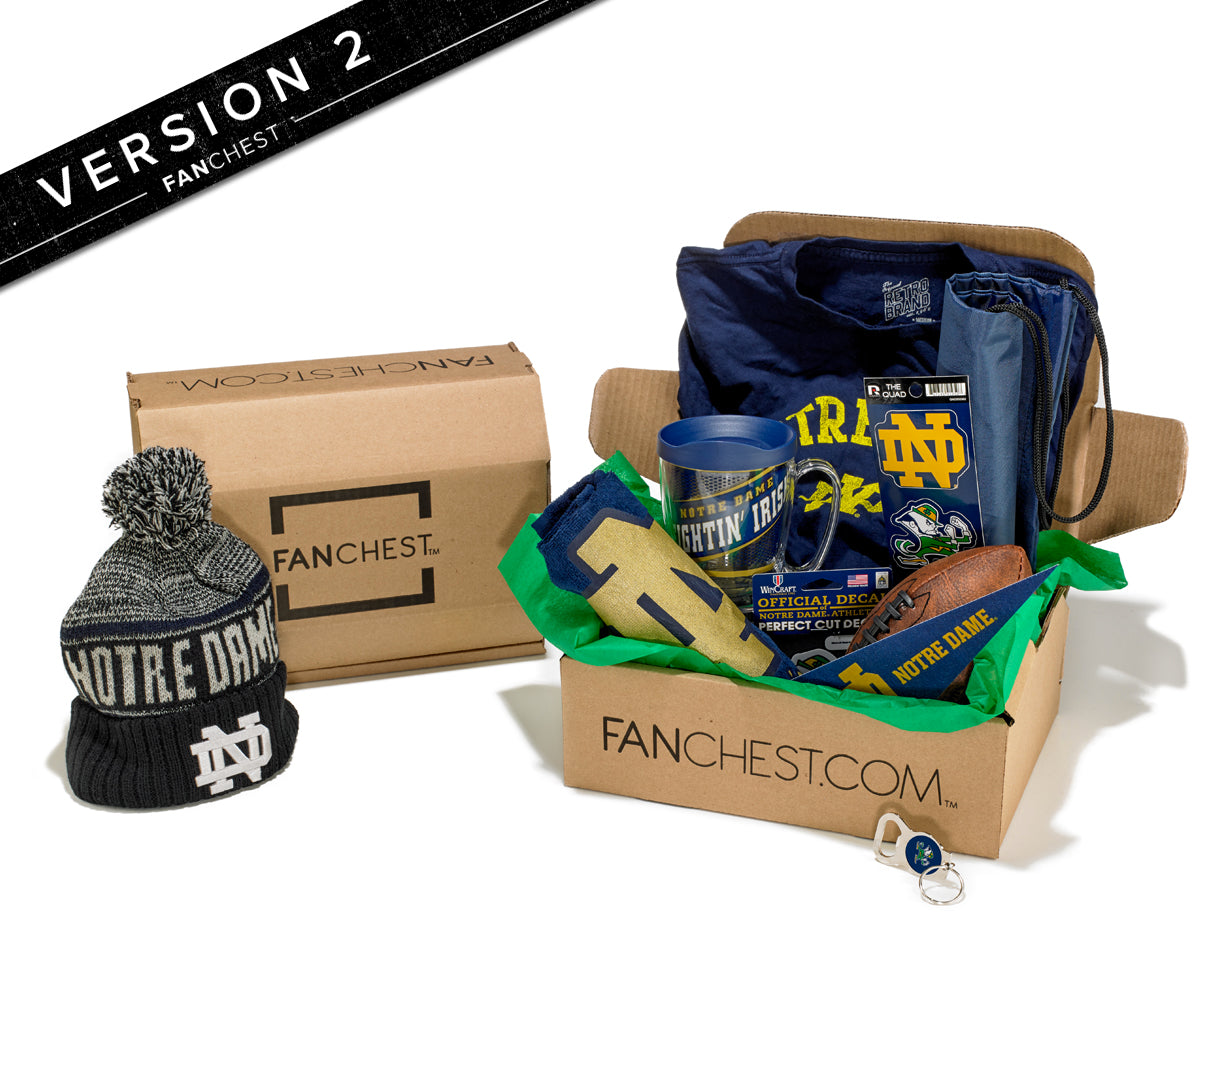 Notre Dame FANCHEST II